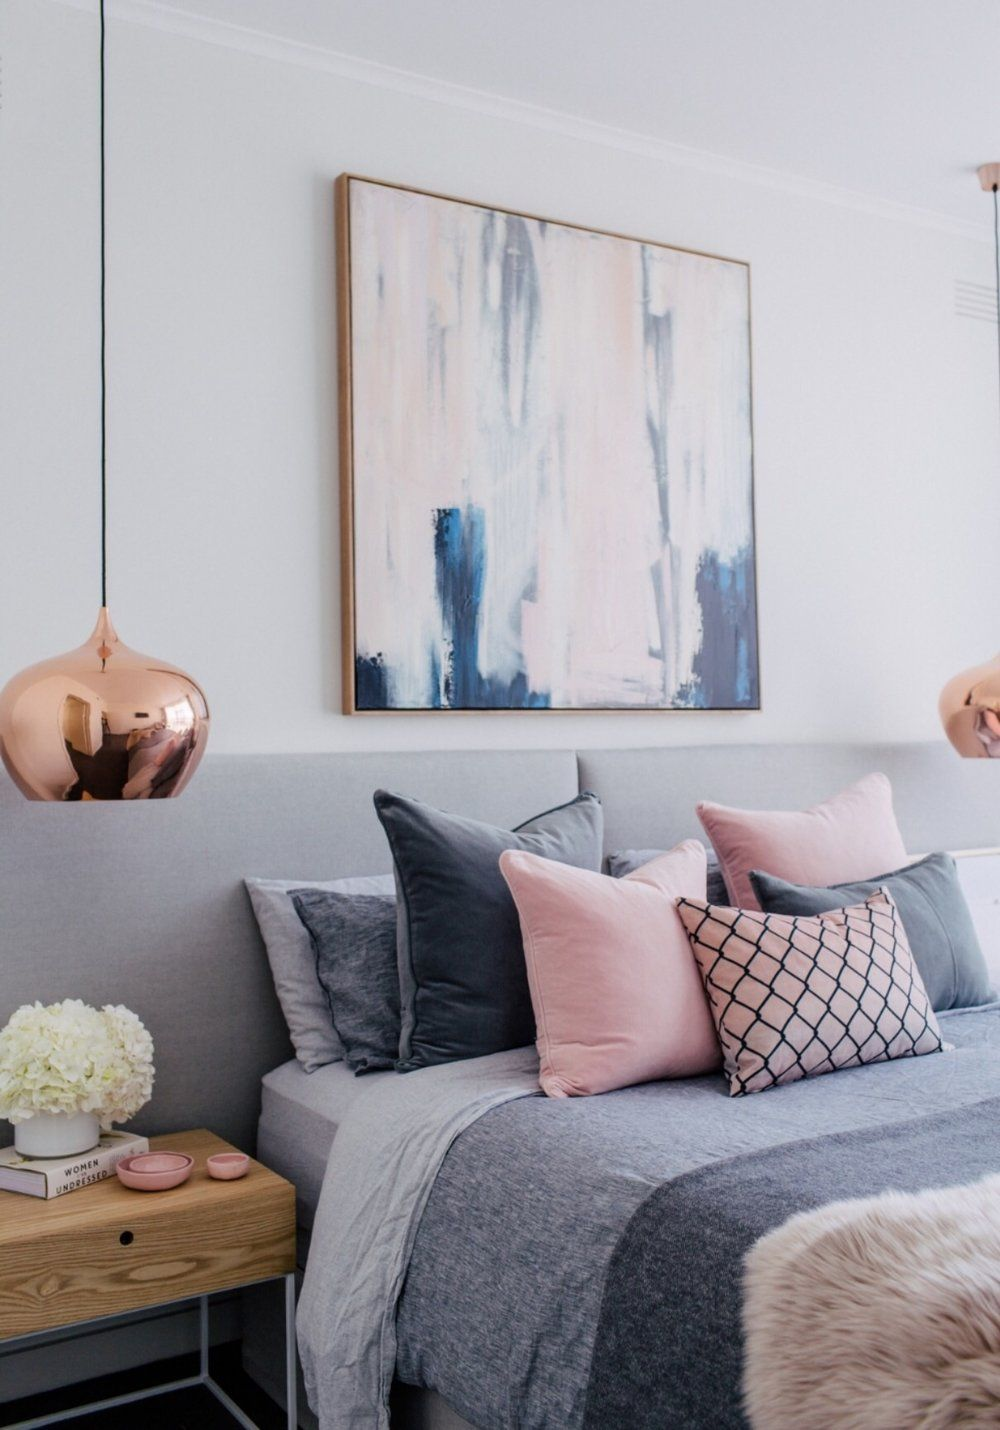 Idée Deco Appartement Pinterest Blush White And Grey Bedroom Inspiration Idées Pour La Maison